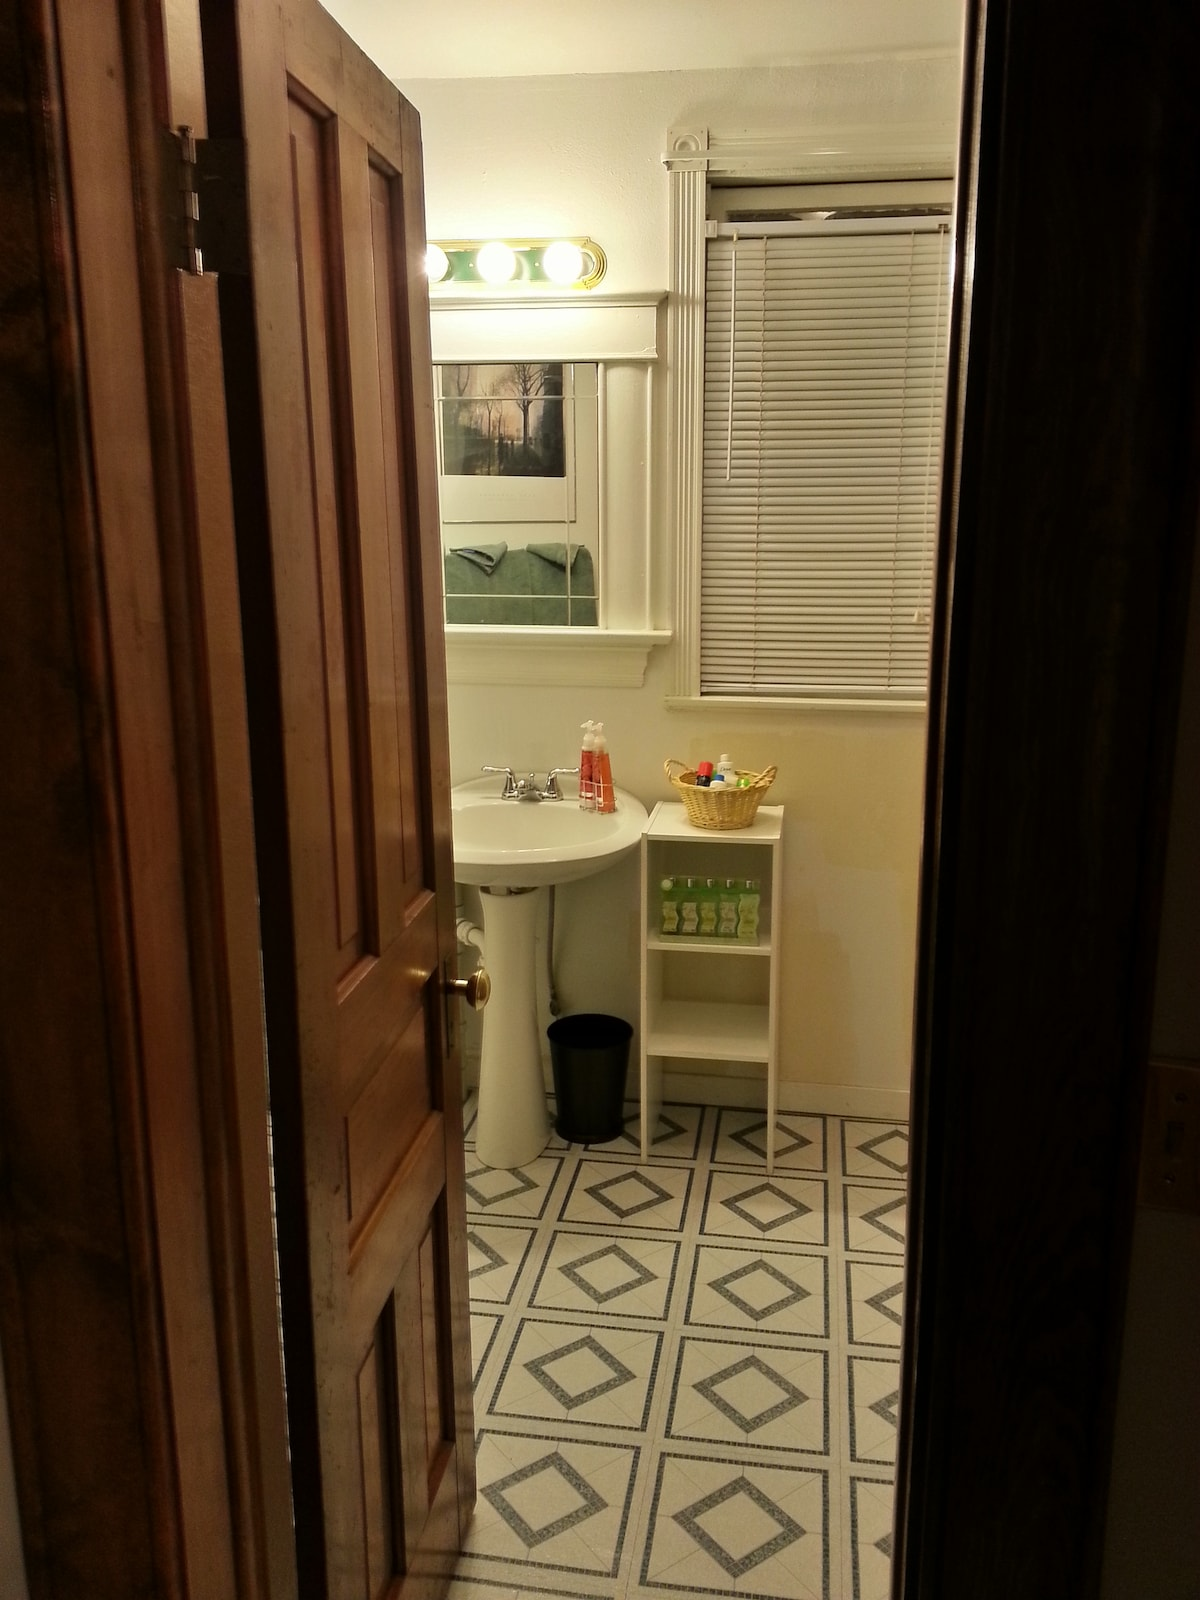 The bathroom as a single-sink vanity, jetted tub/shower and separate water closet with pull-chain toilet.